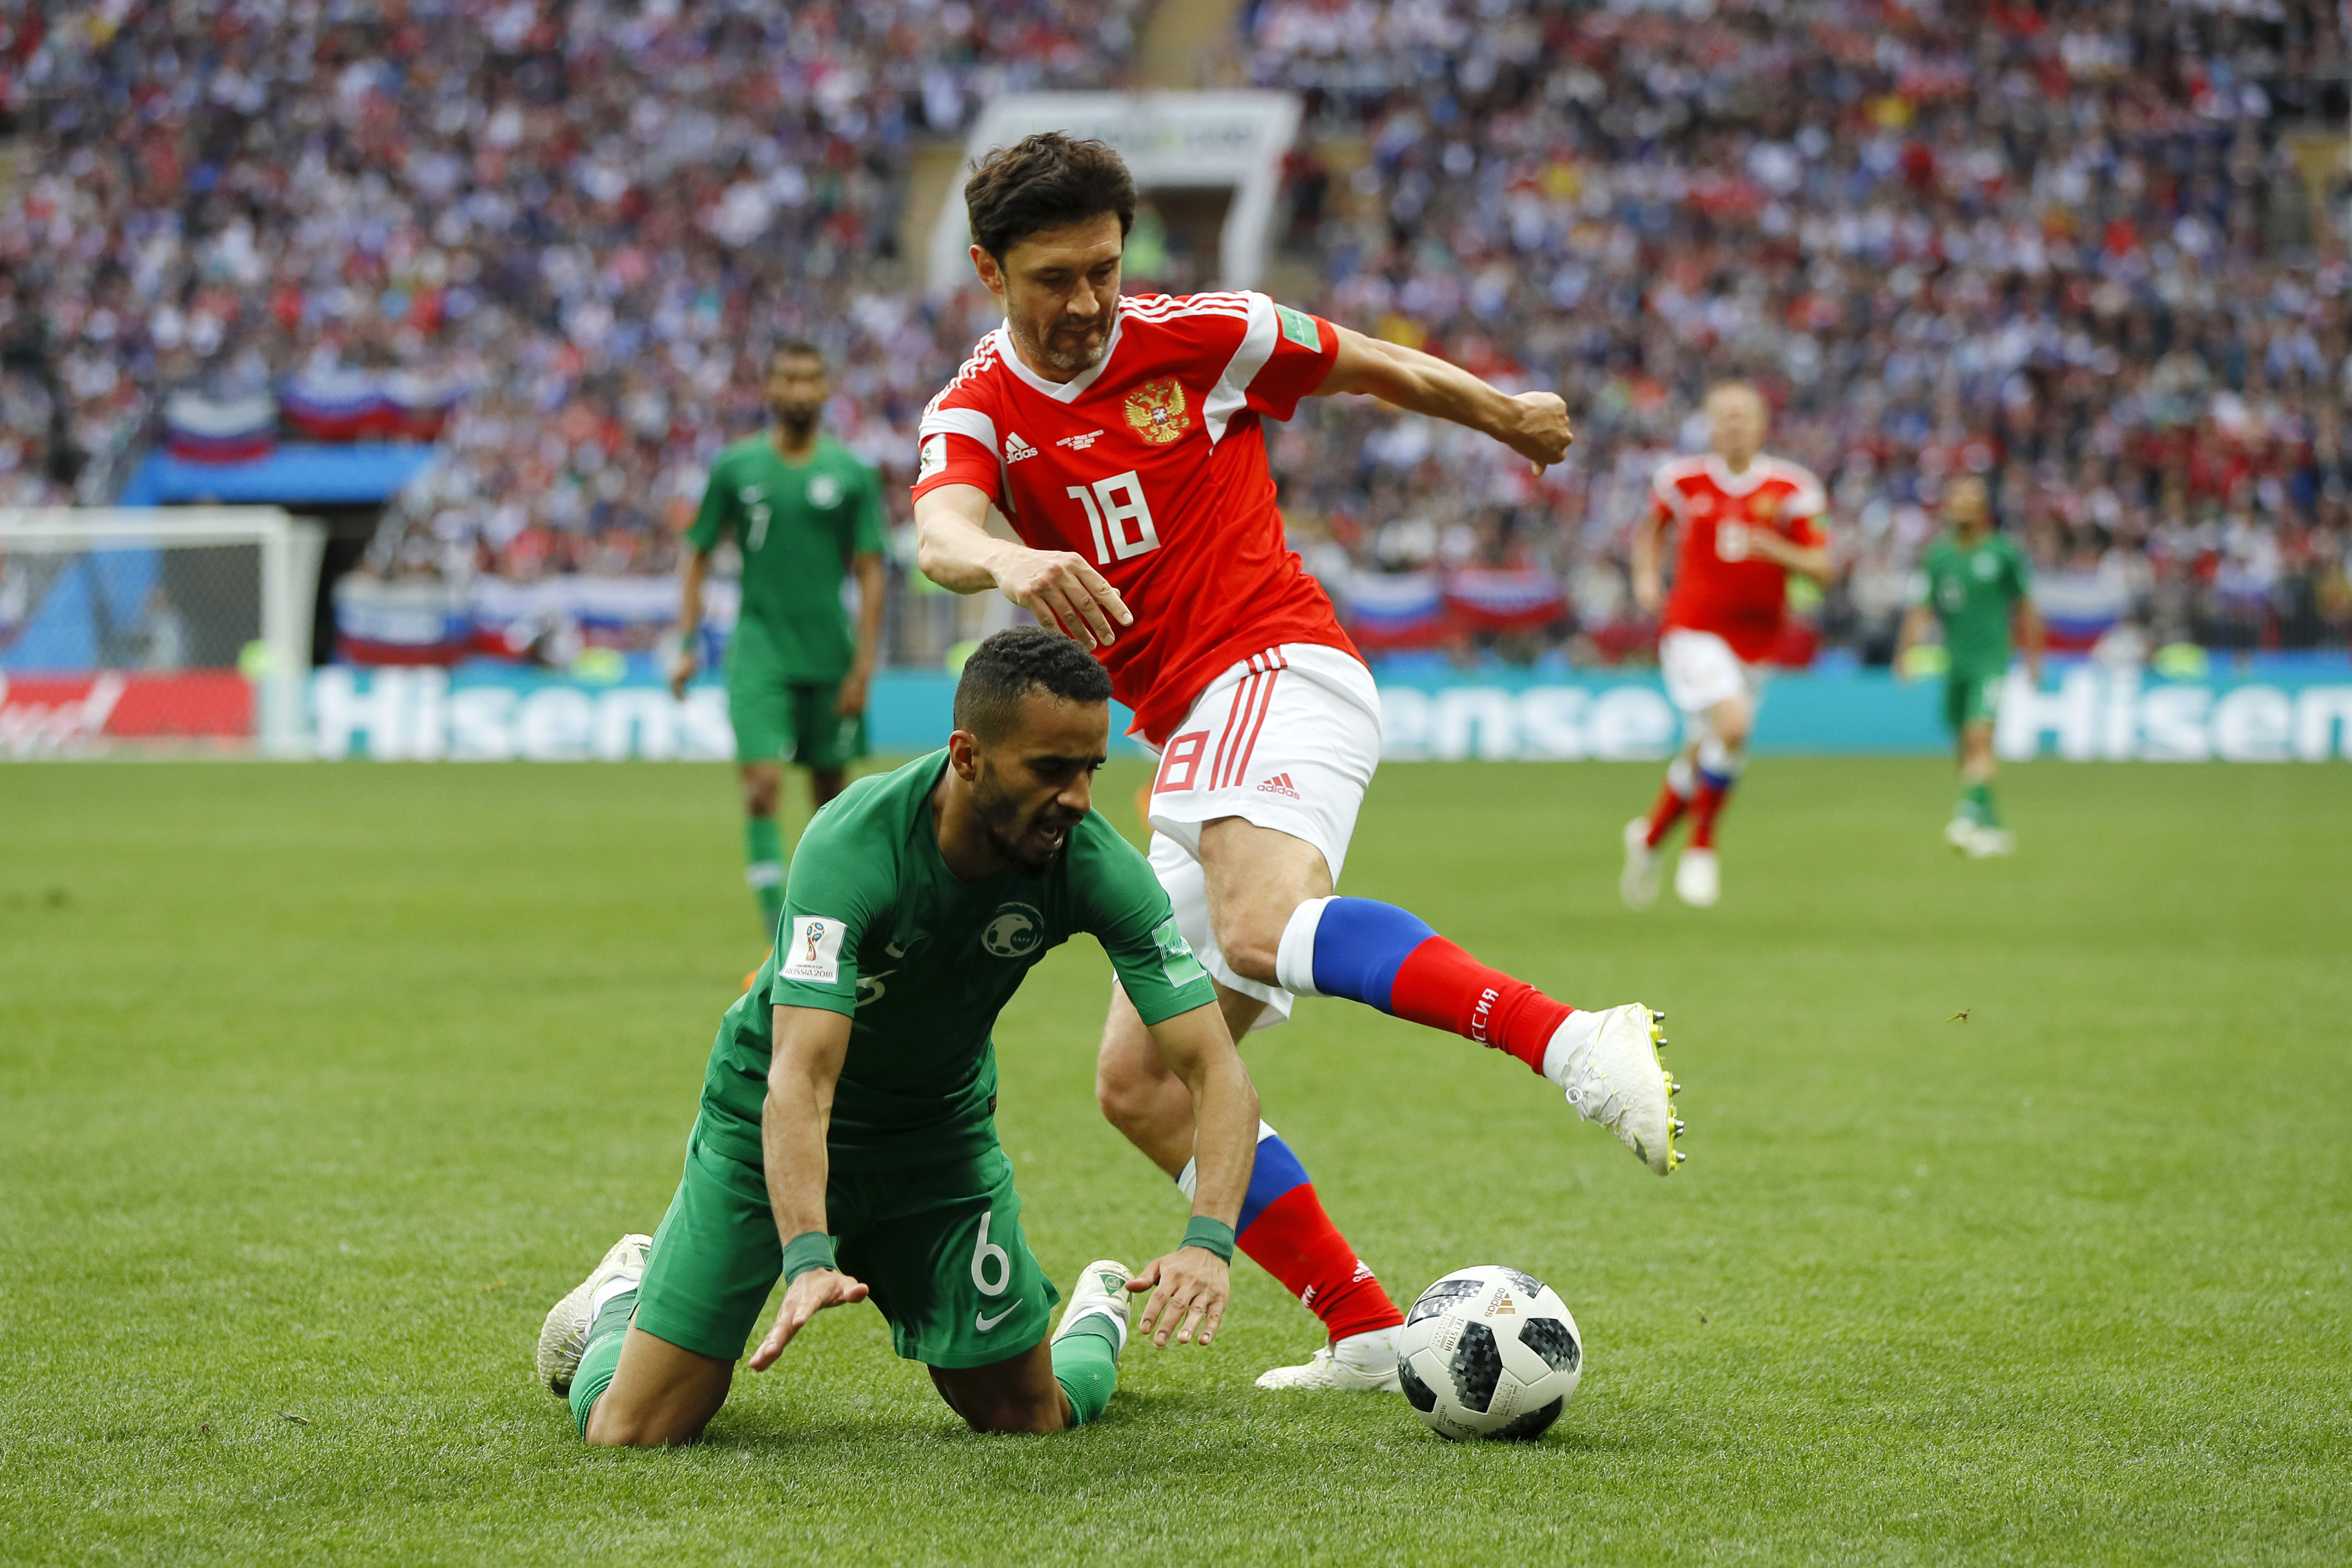 A soccer player in red goes for the ball as a soccer player in green falls to his knees in the opening World Cup soccer match between Saudi Arabia and Russia.